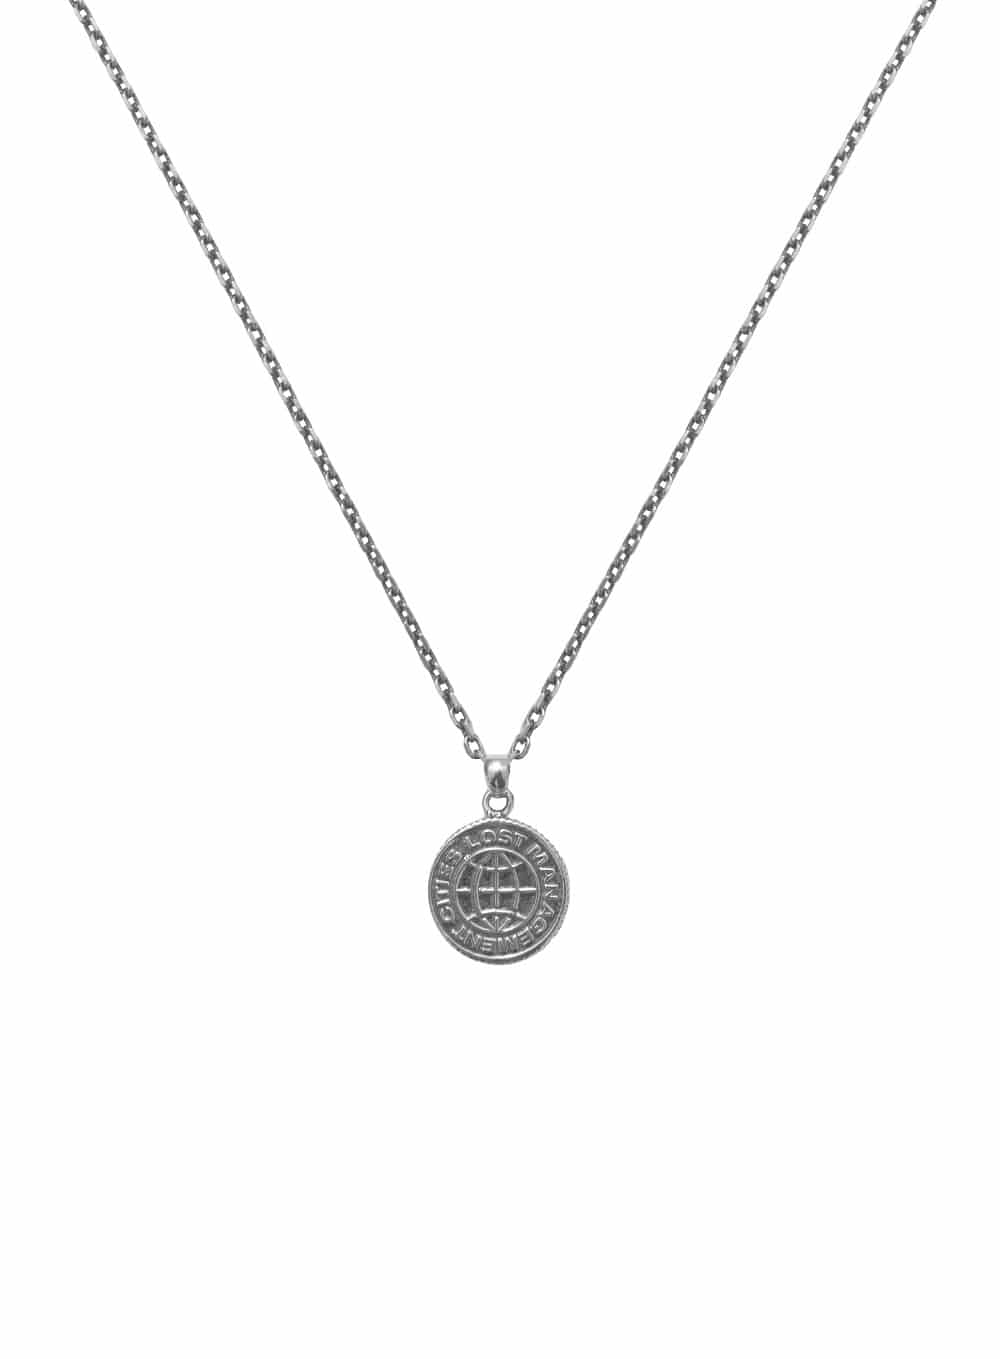 LMC COIN SILVER NECKLACE